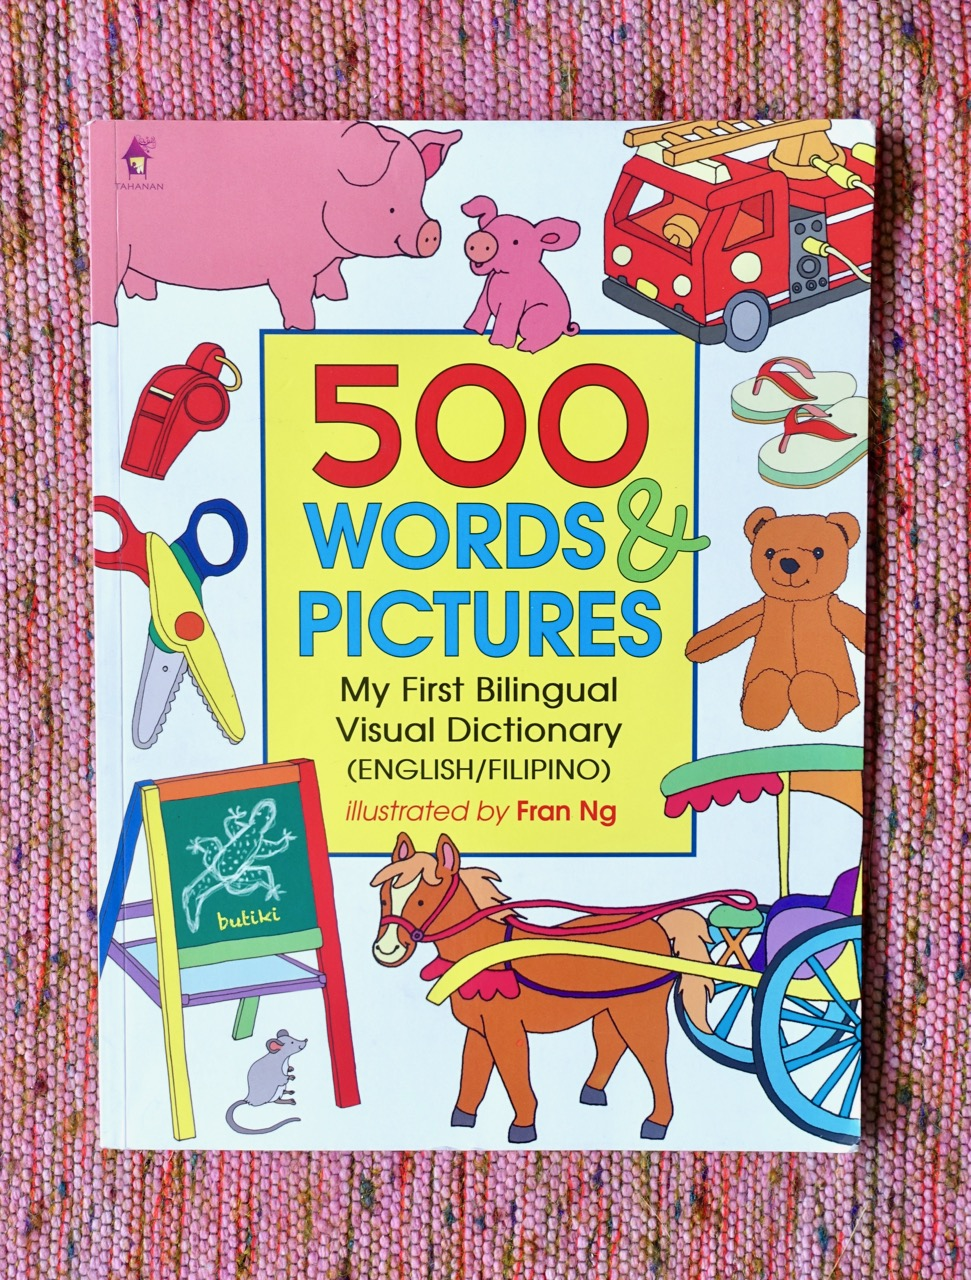 500 Words l